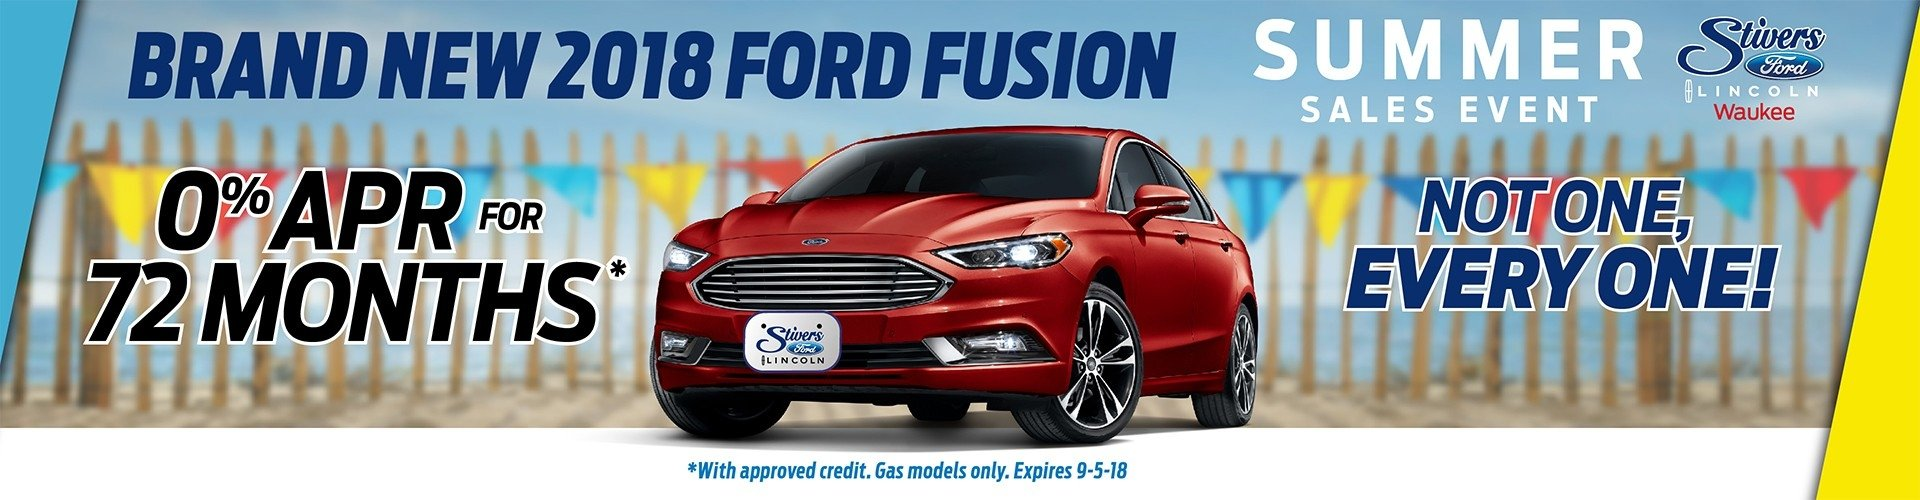 Summer Sales Event  Ford Fusion